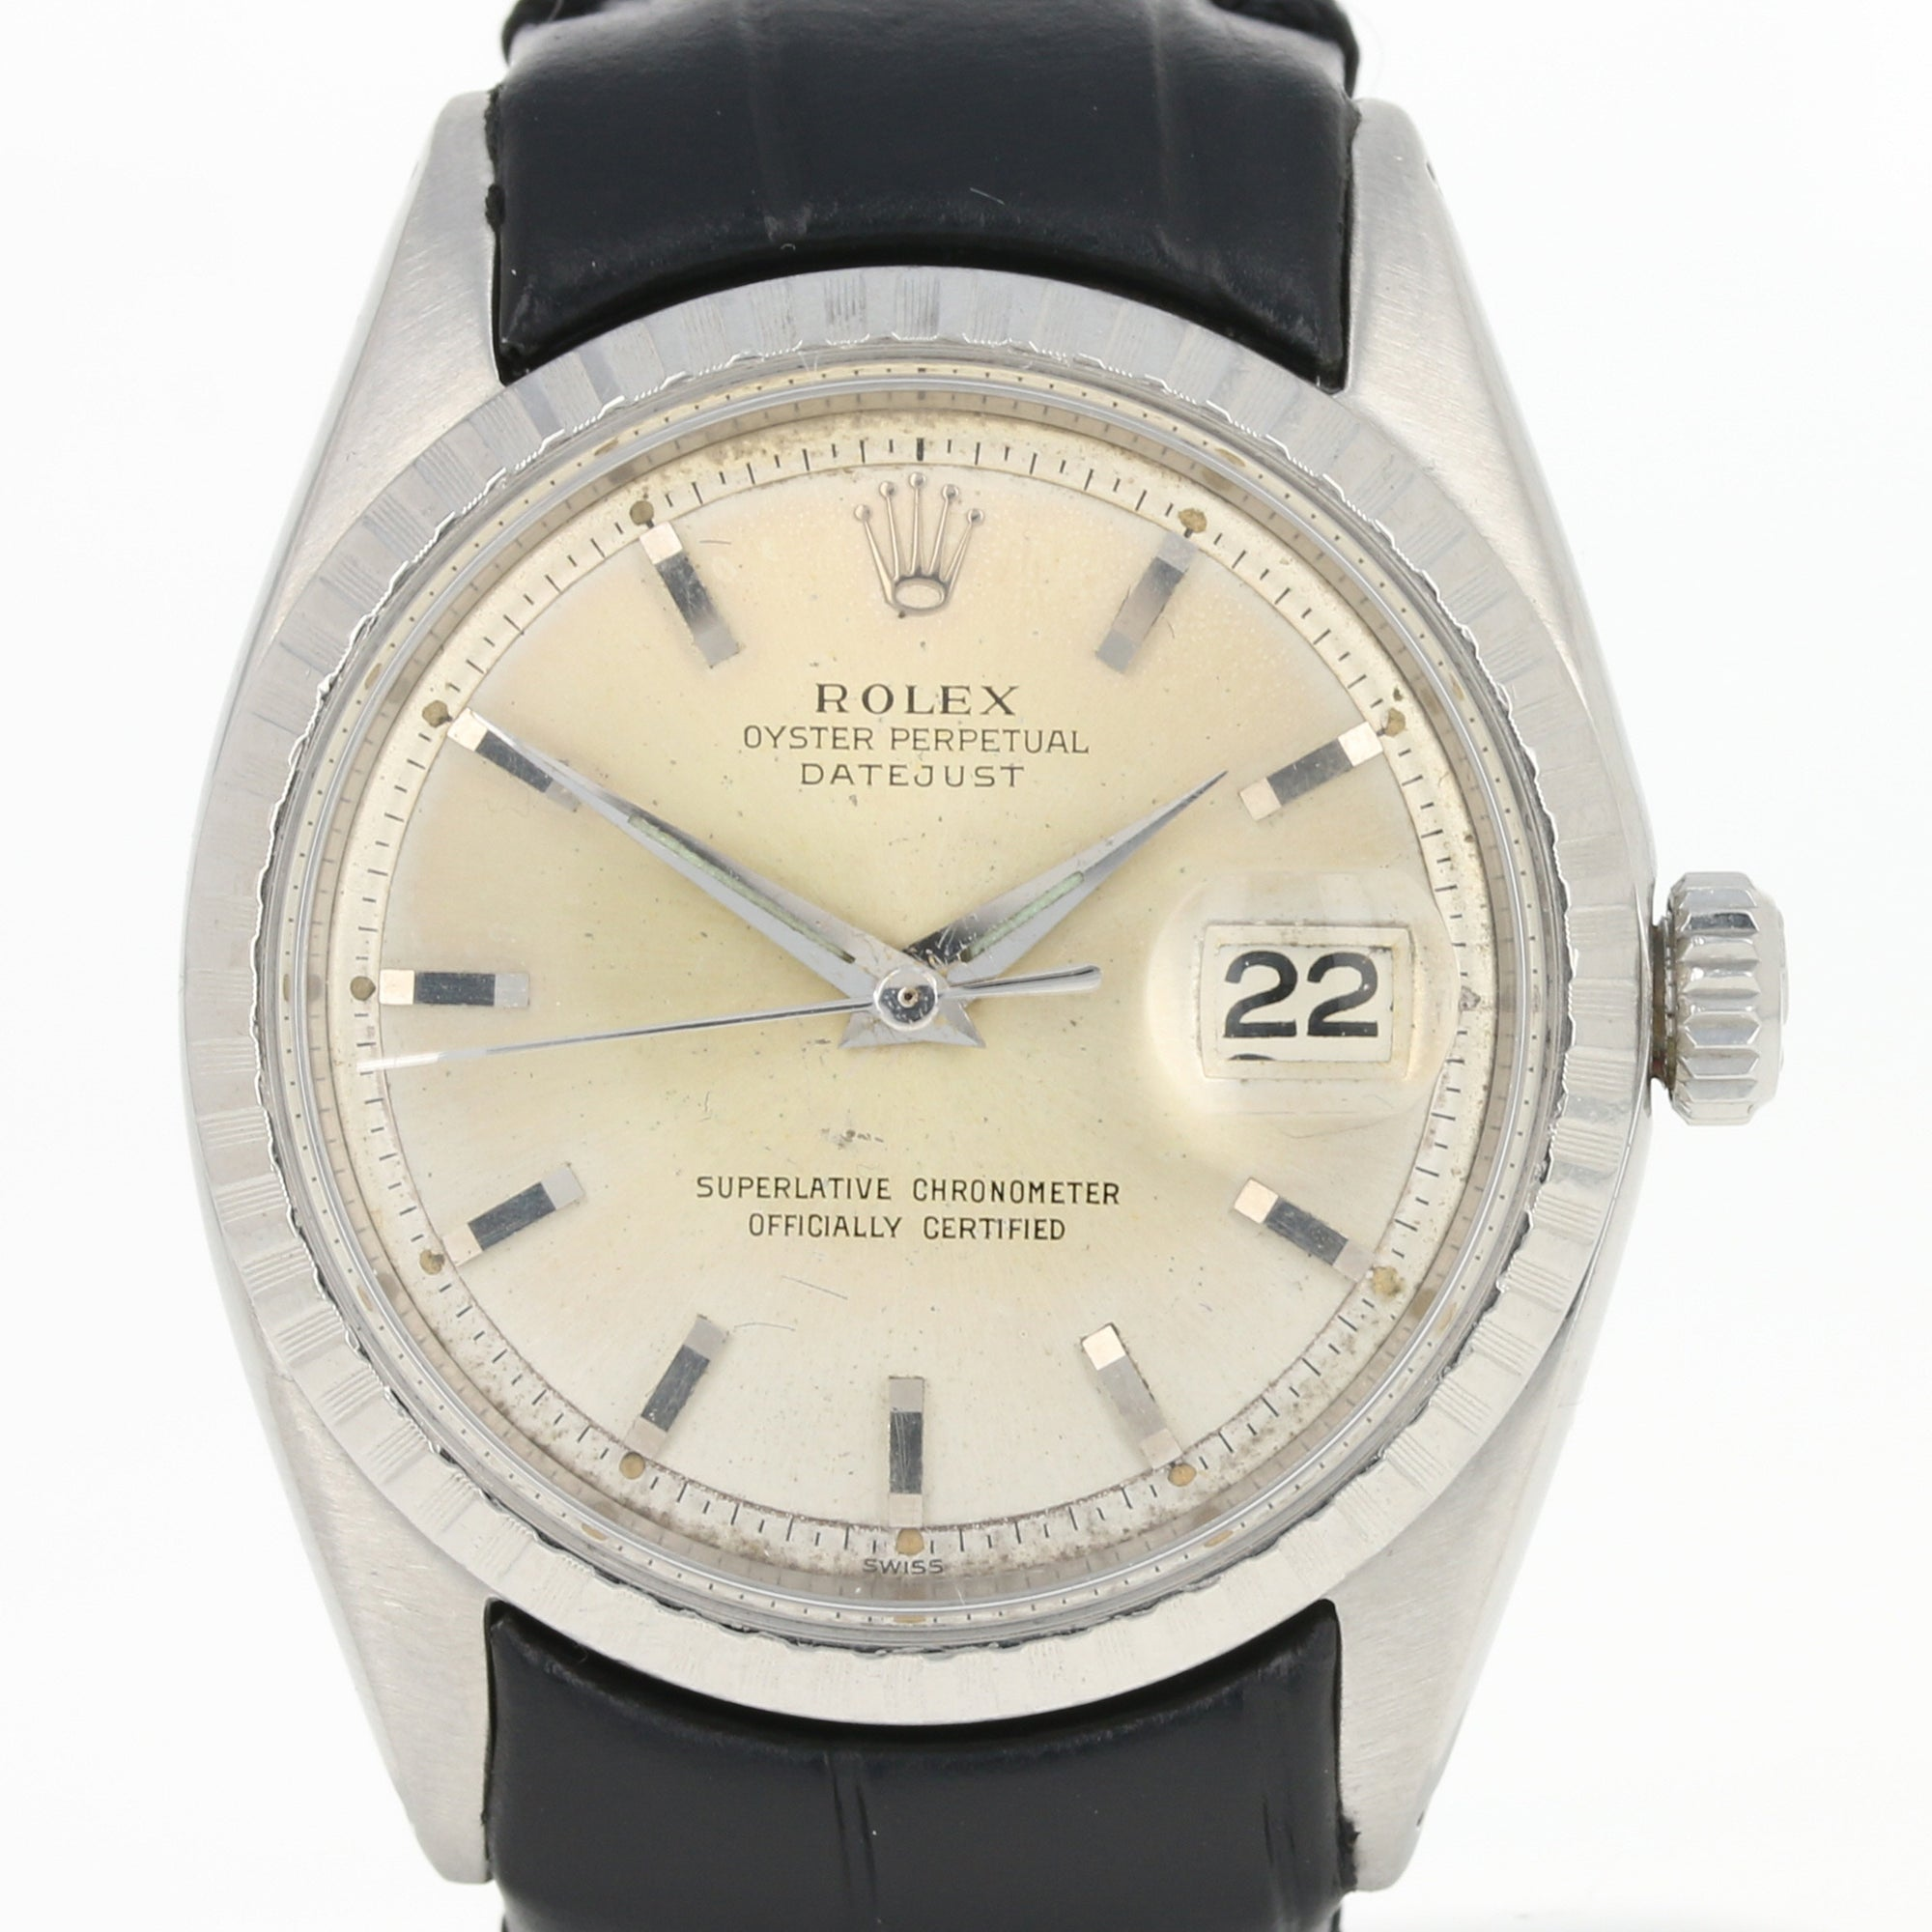 Rolex Oyster Perpetual Datejust Men's Watch Stainless Steel 1603